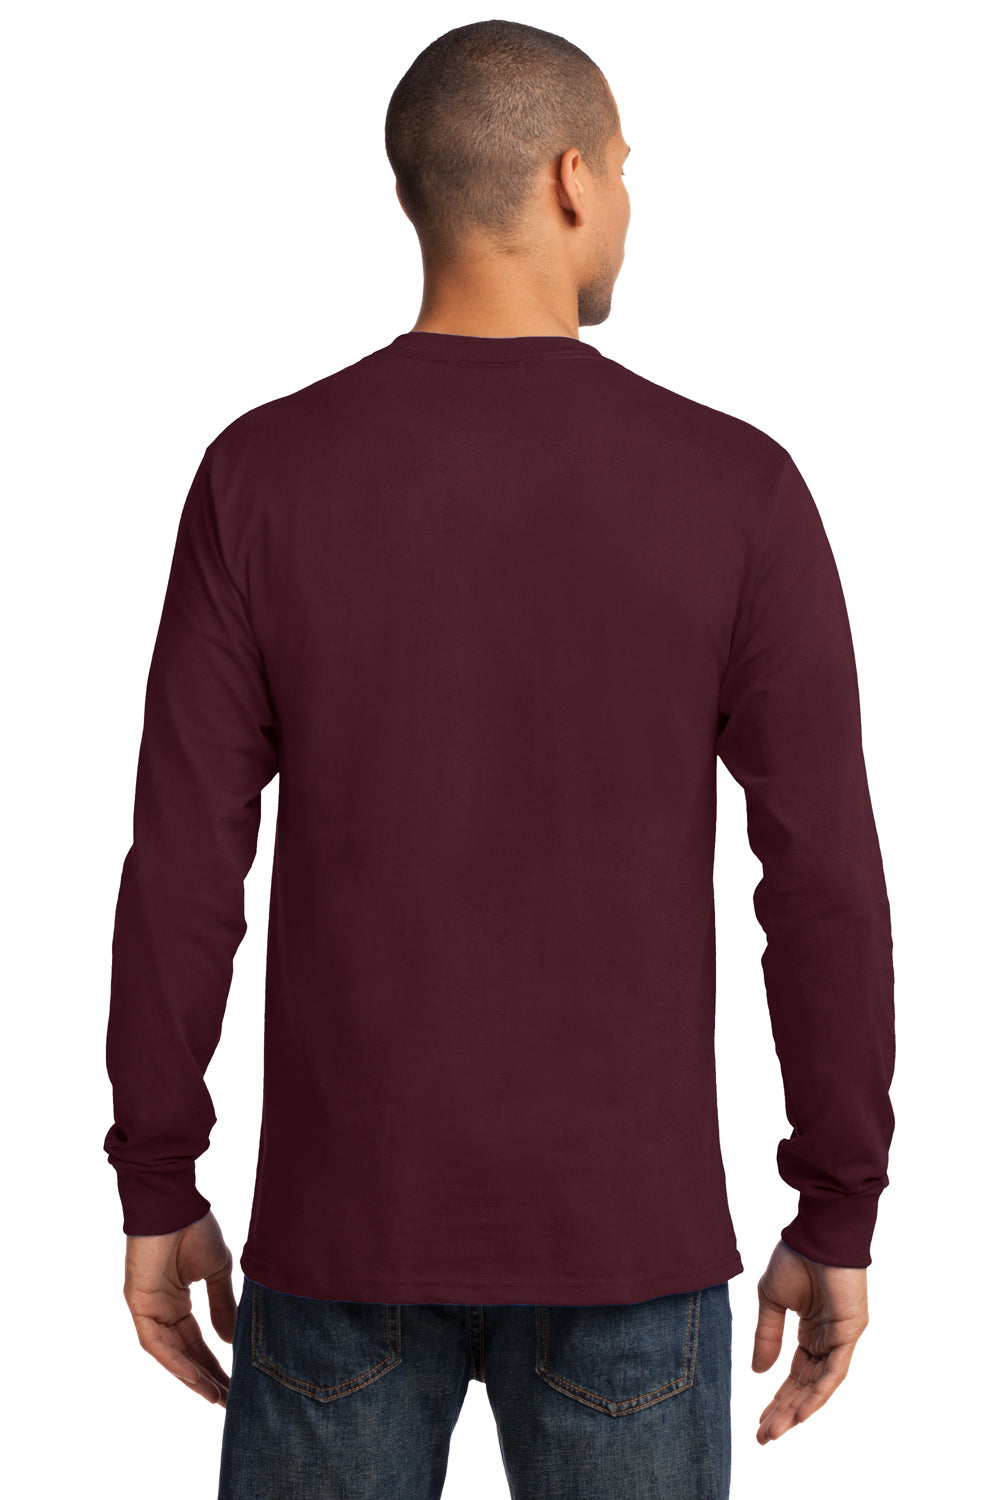 Port & Company PC61LS Mens Essential Long Sleeve Crewneck T-Shirt Maroon Back